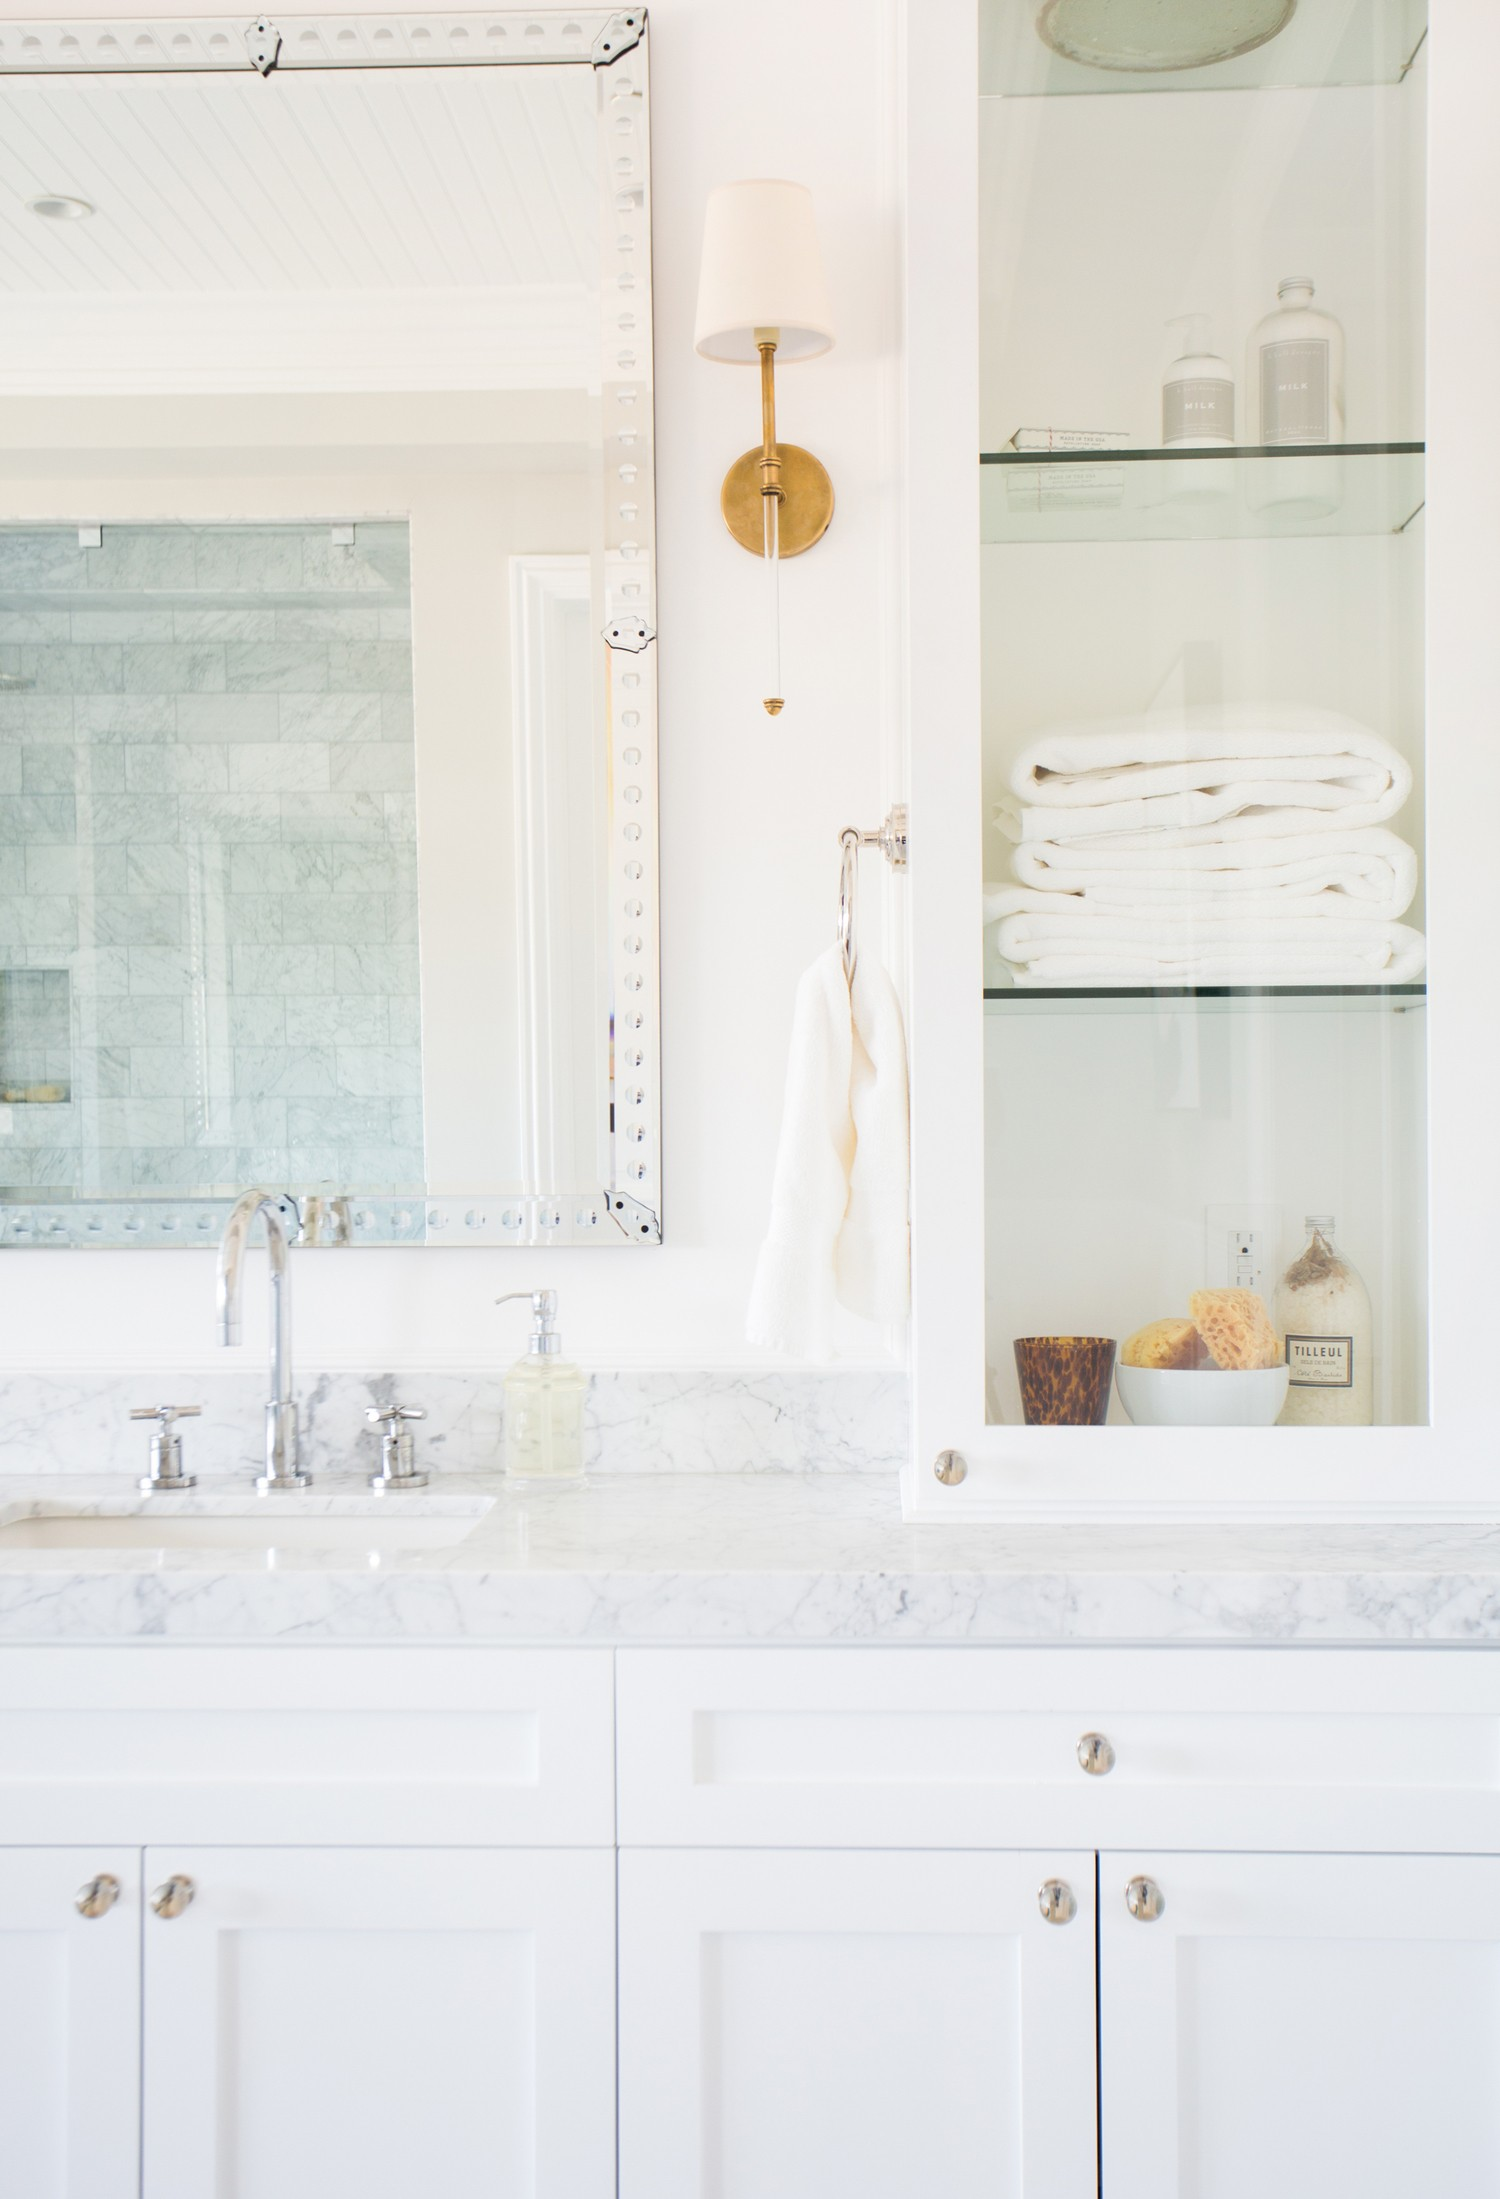 Mixed+metals+and+bathroom+styling+__+Studio+McGee.jpg